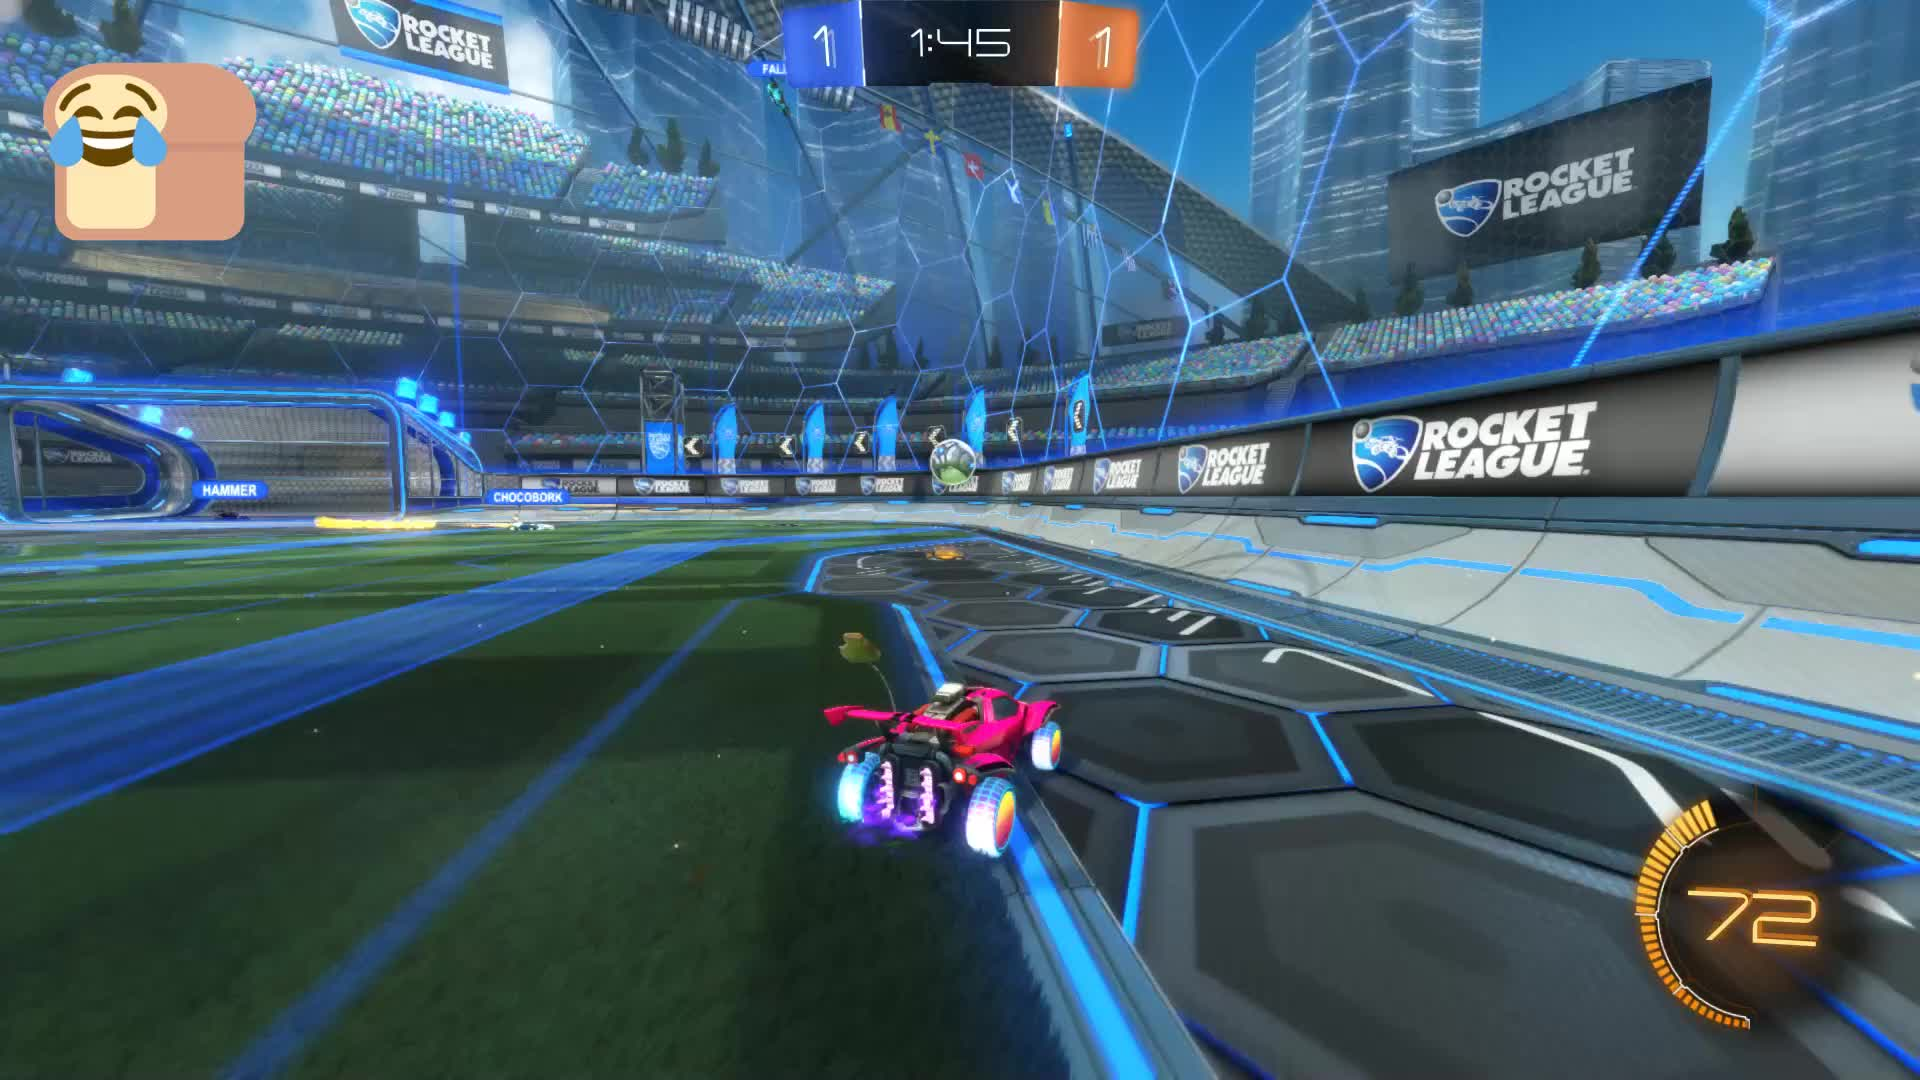 Bread lovin, Gif Your Game, GifYourGame, Goal, Rocket League, RocketLeague, Goal 3: Bread lovin GIFs